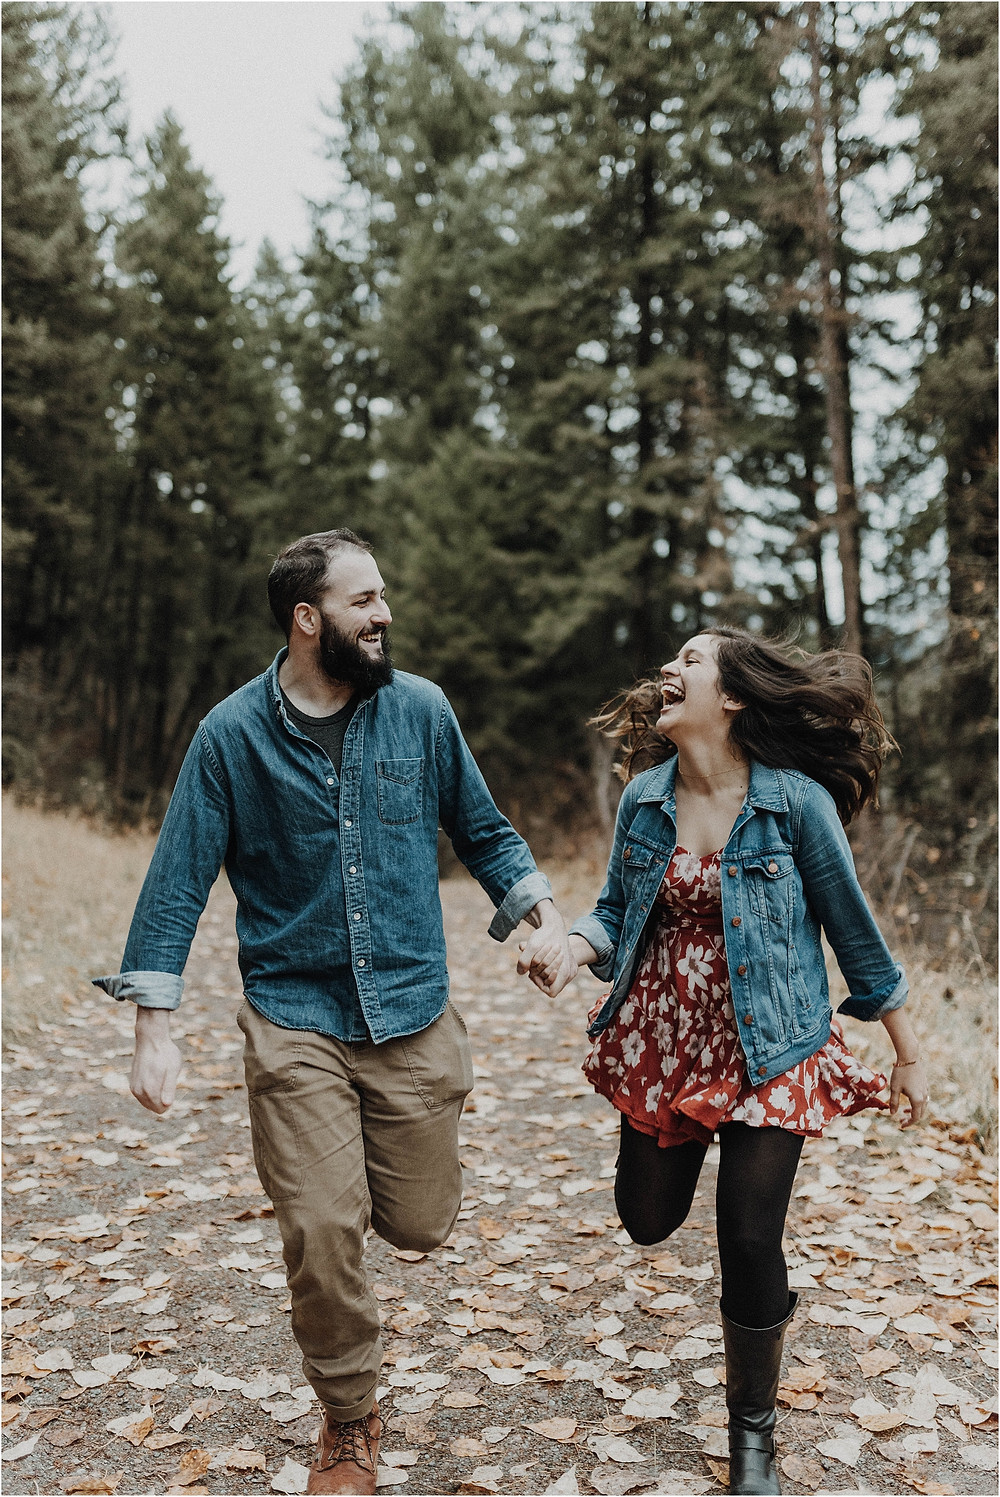 Engagement photos in the woods, fall engagement, mountain photo shoot, sunset photos, Bohemian engagements, What to wear for engagement shoot, moody, Montana photographer, Missoula Engagement, bohemian, unposed